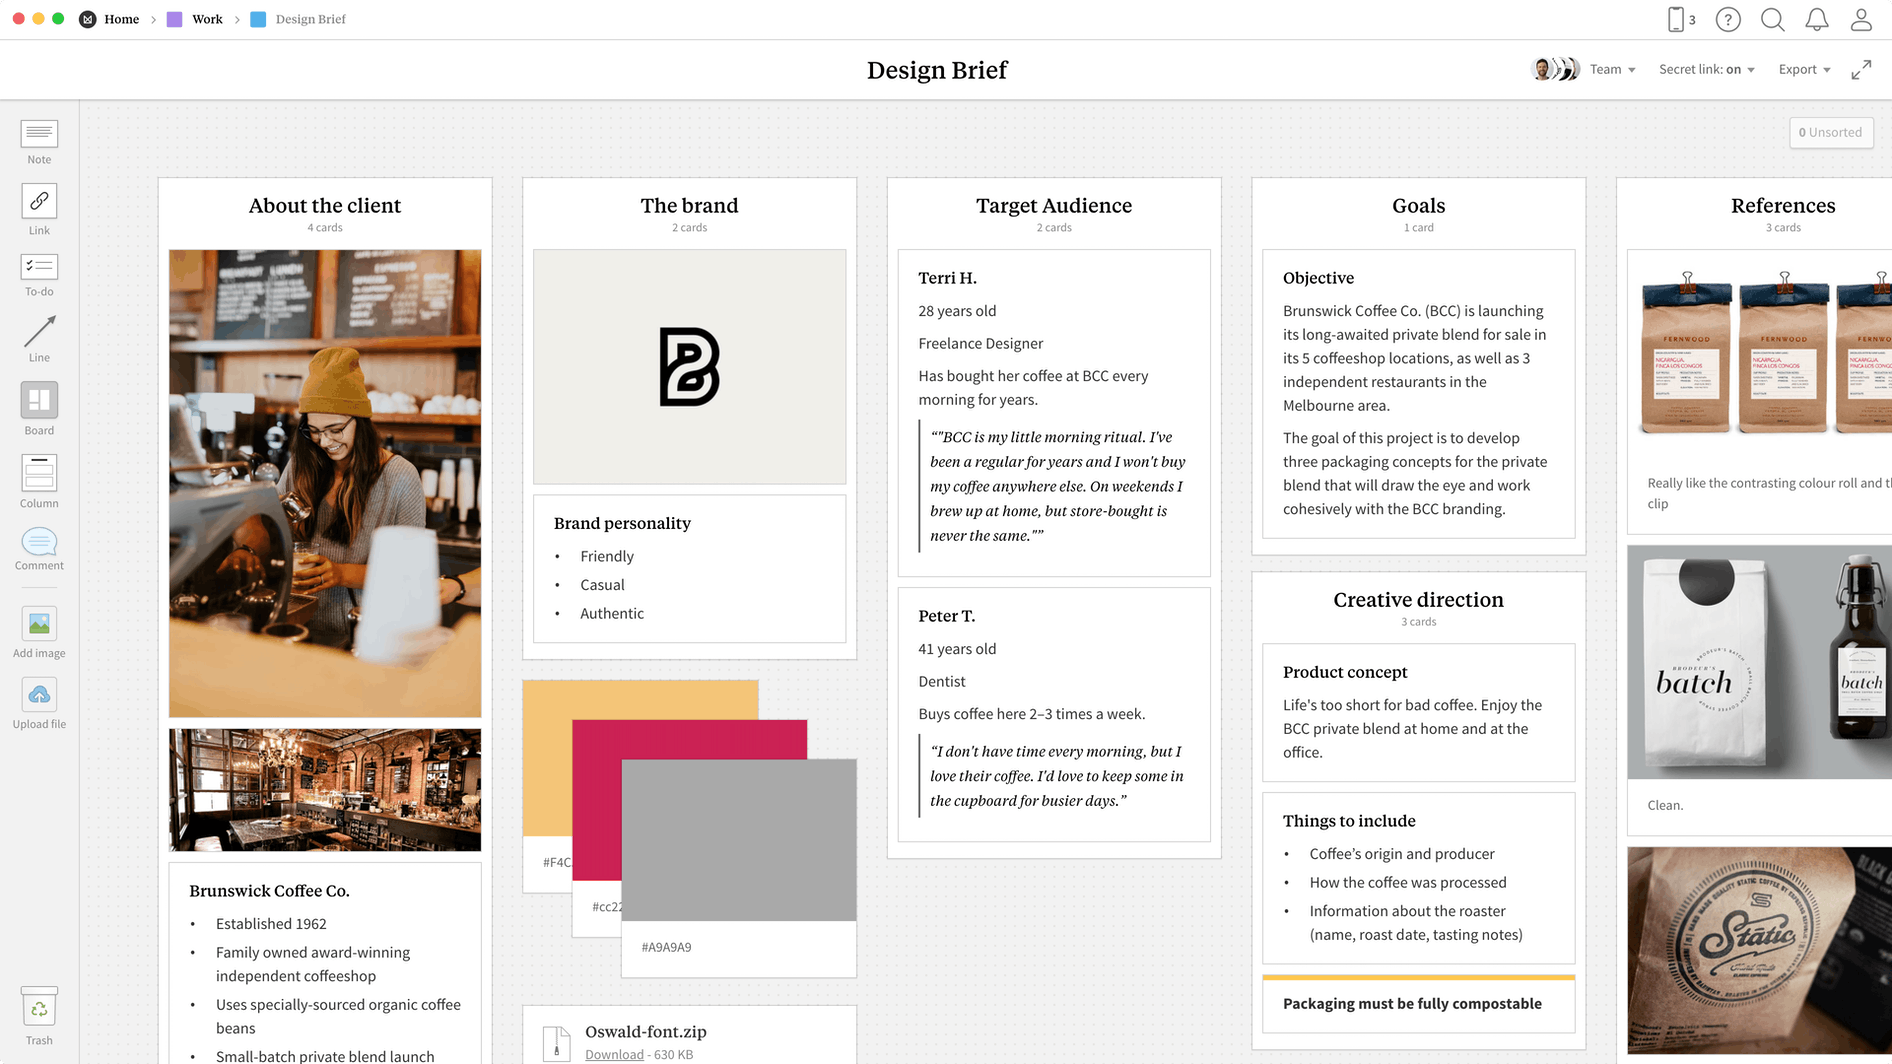 Design Brief Template, within the Milanote app